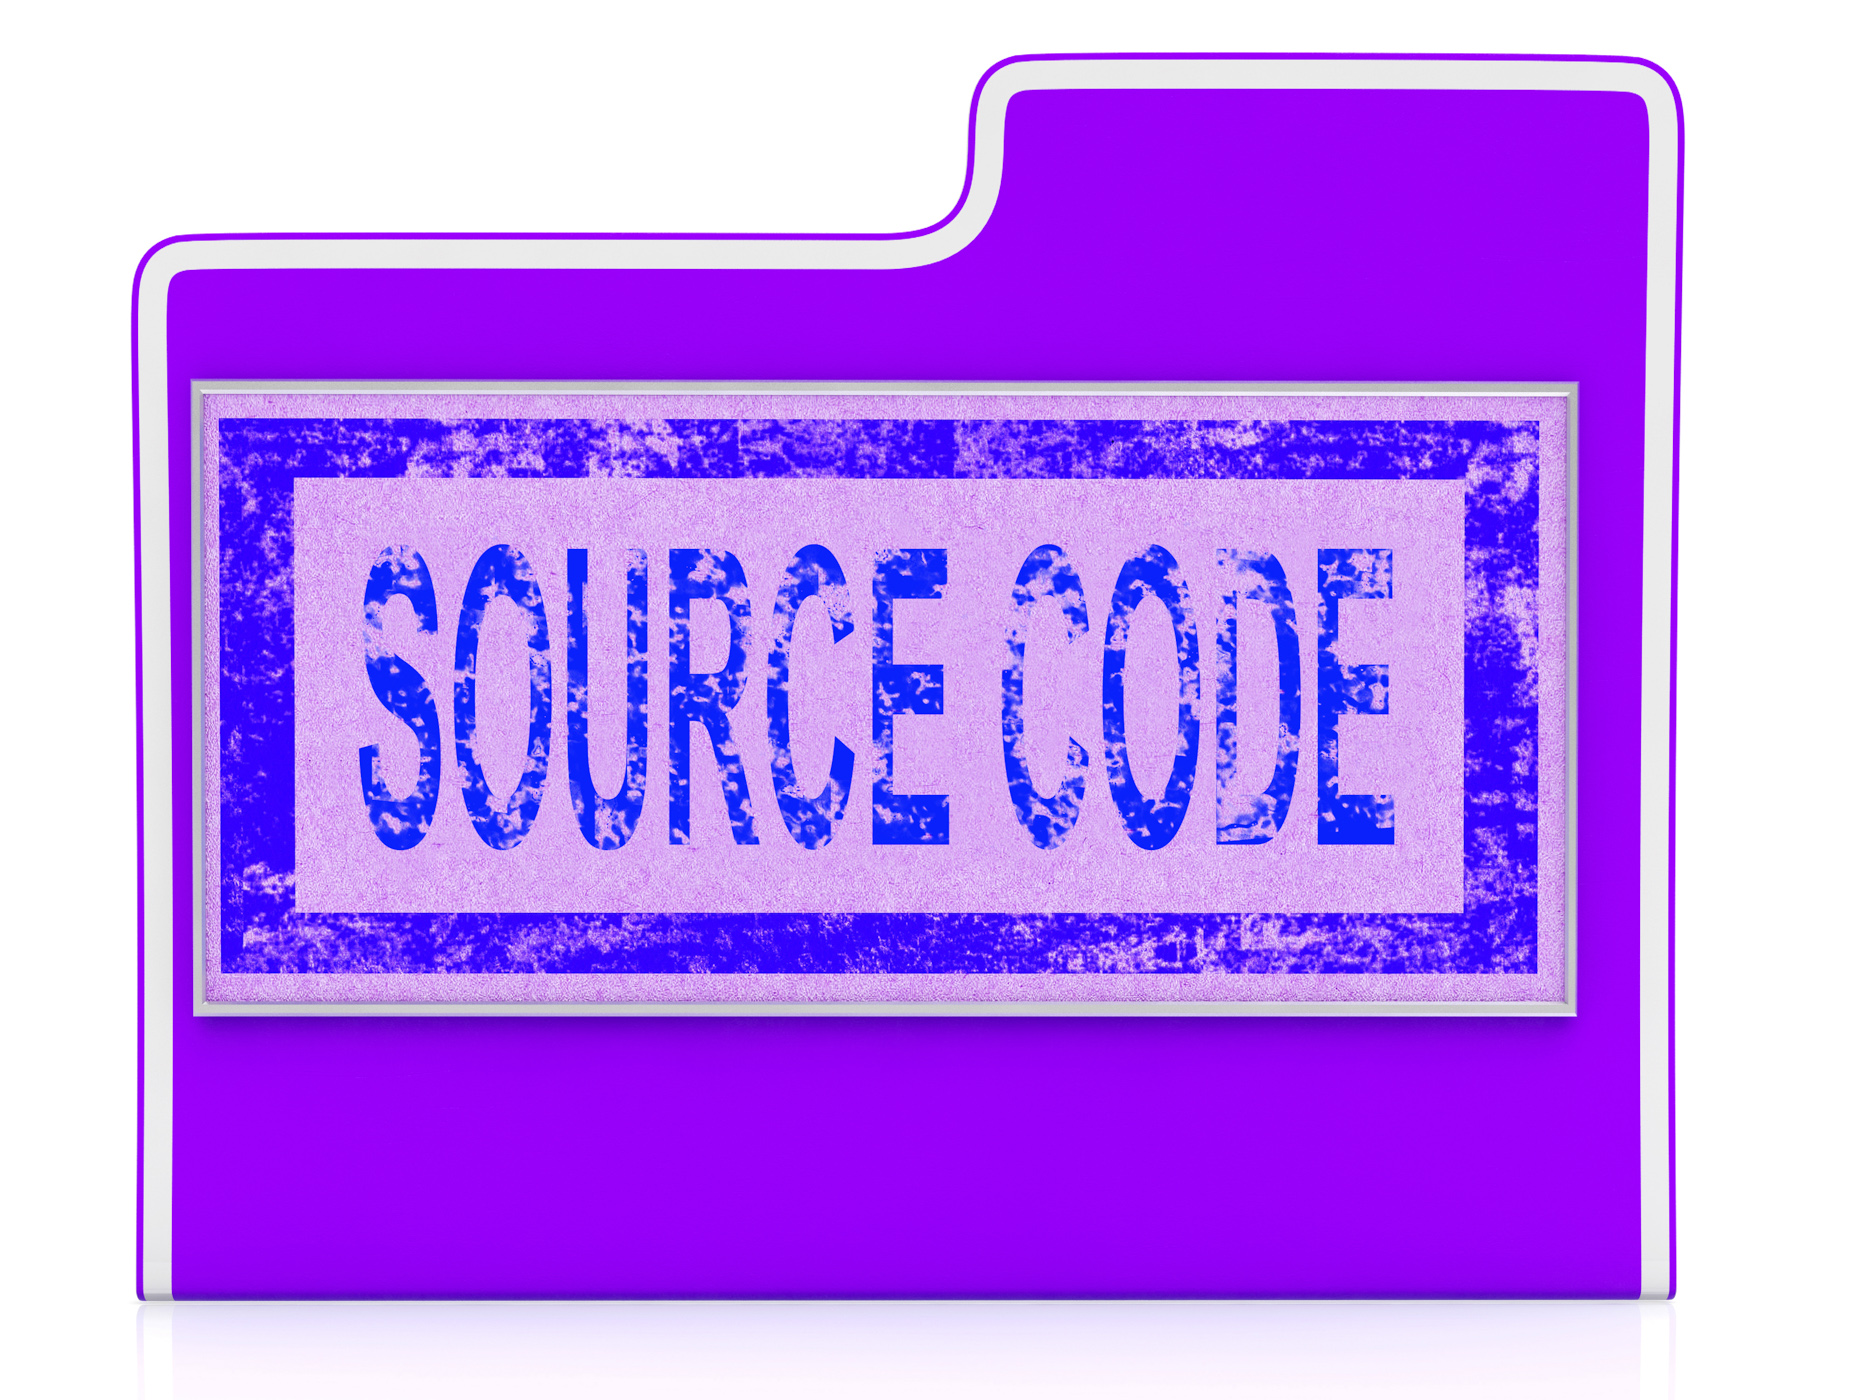 Source code indicates administration organized and computer photo